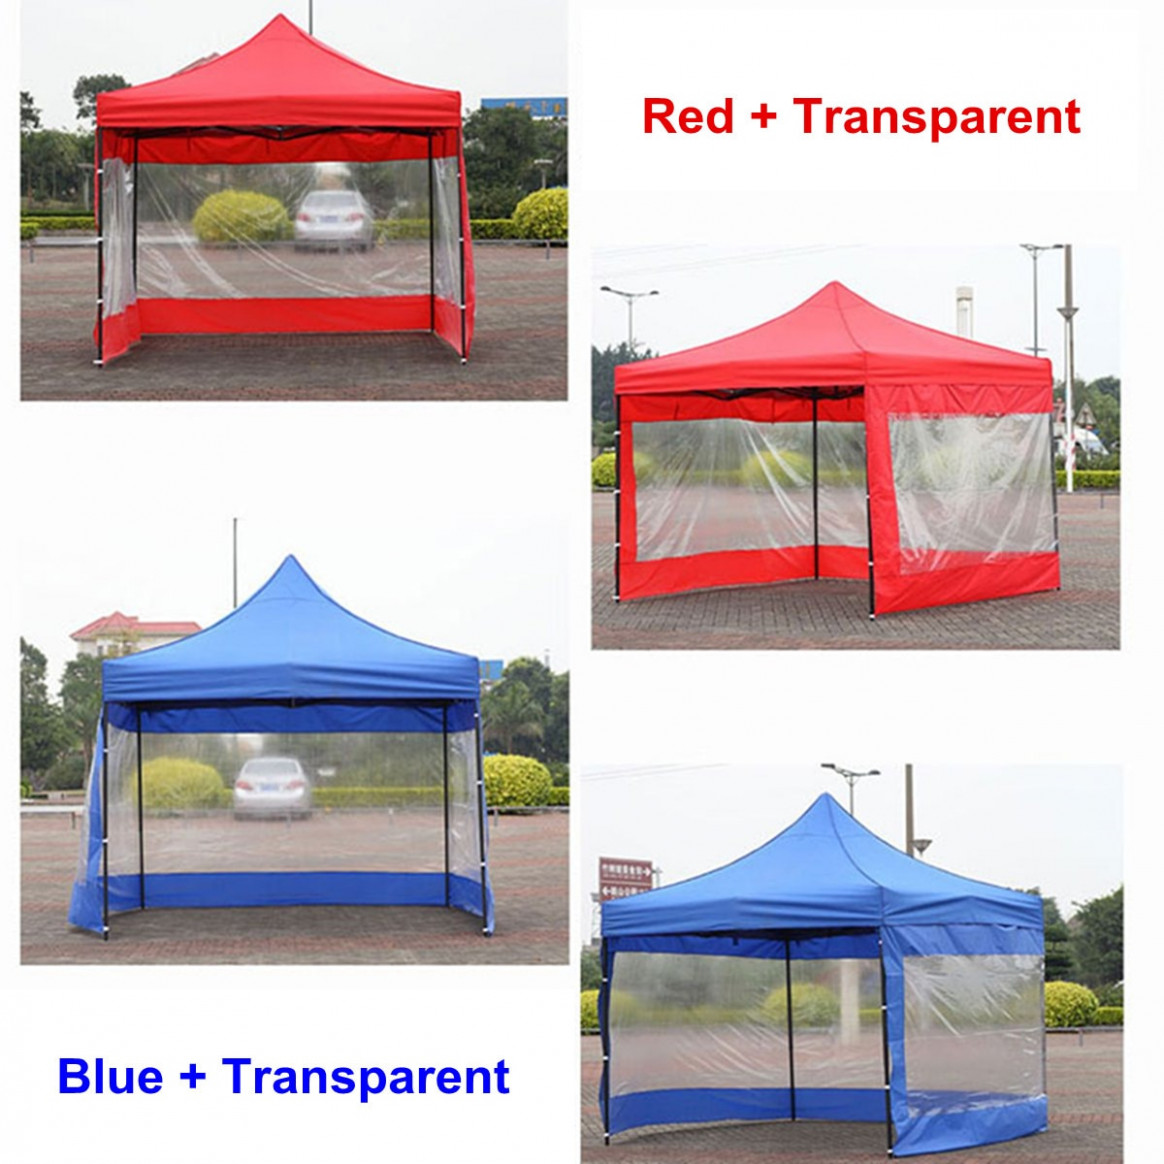 8 Color Polyester Canopy Side Wall Carport Garage Enclosure Shelter Tent Party Sun Wall Sunshade Shelter Tarp Sidewall Sunshade Carport Canopy Pictures